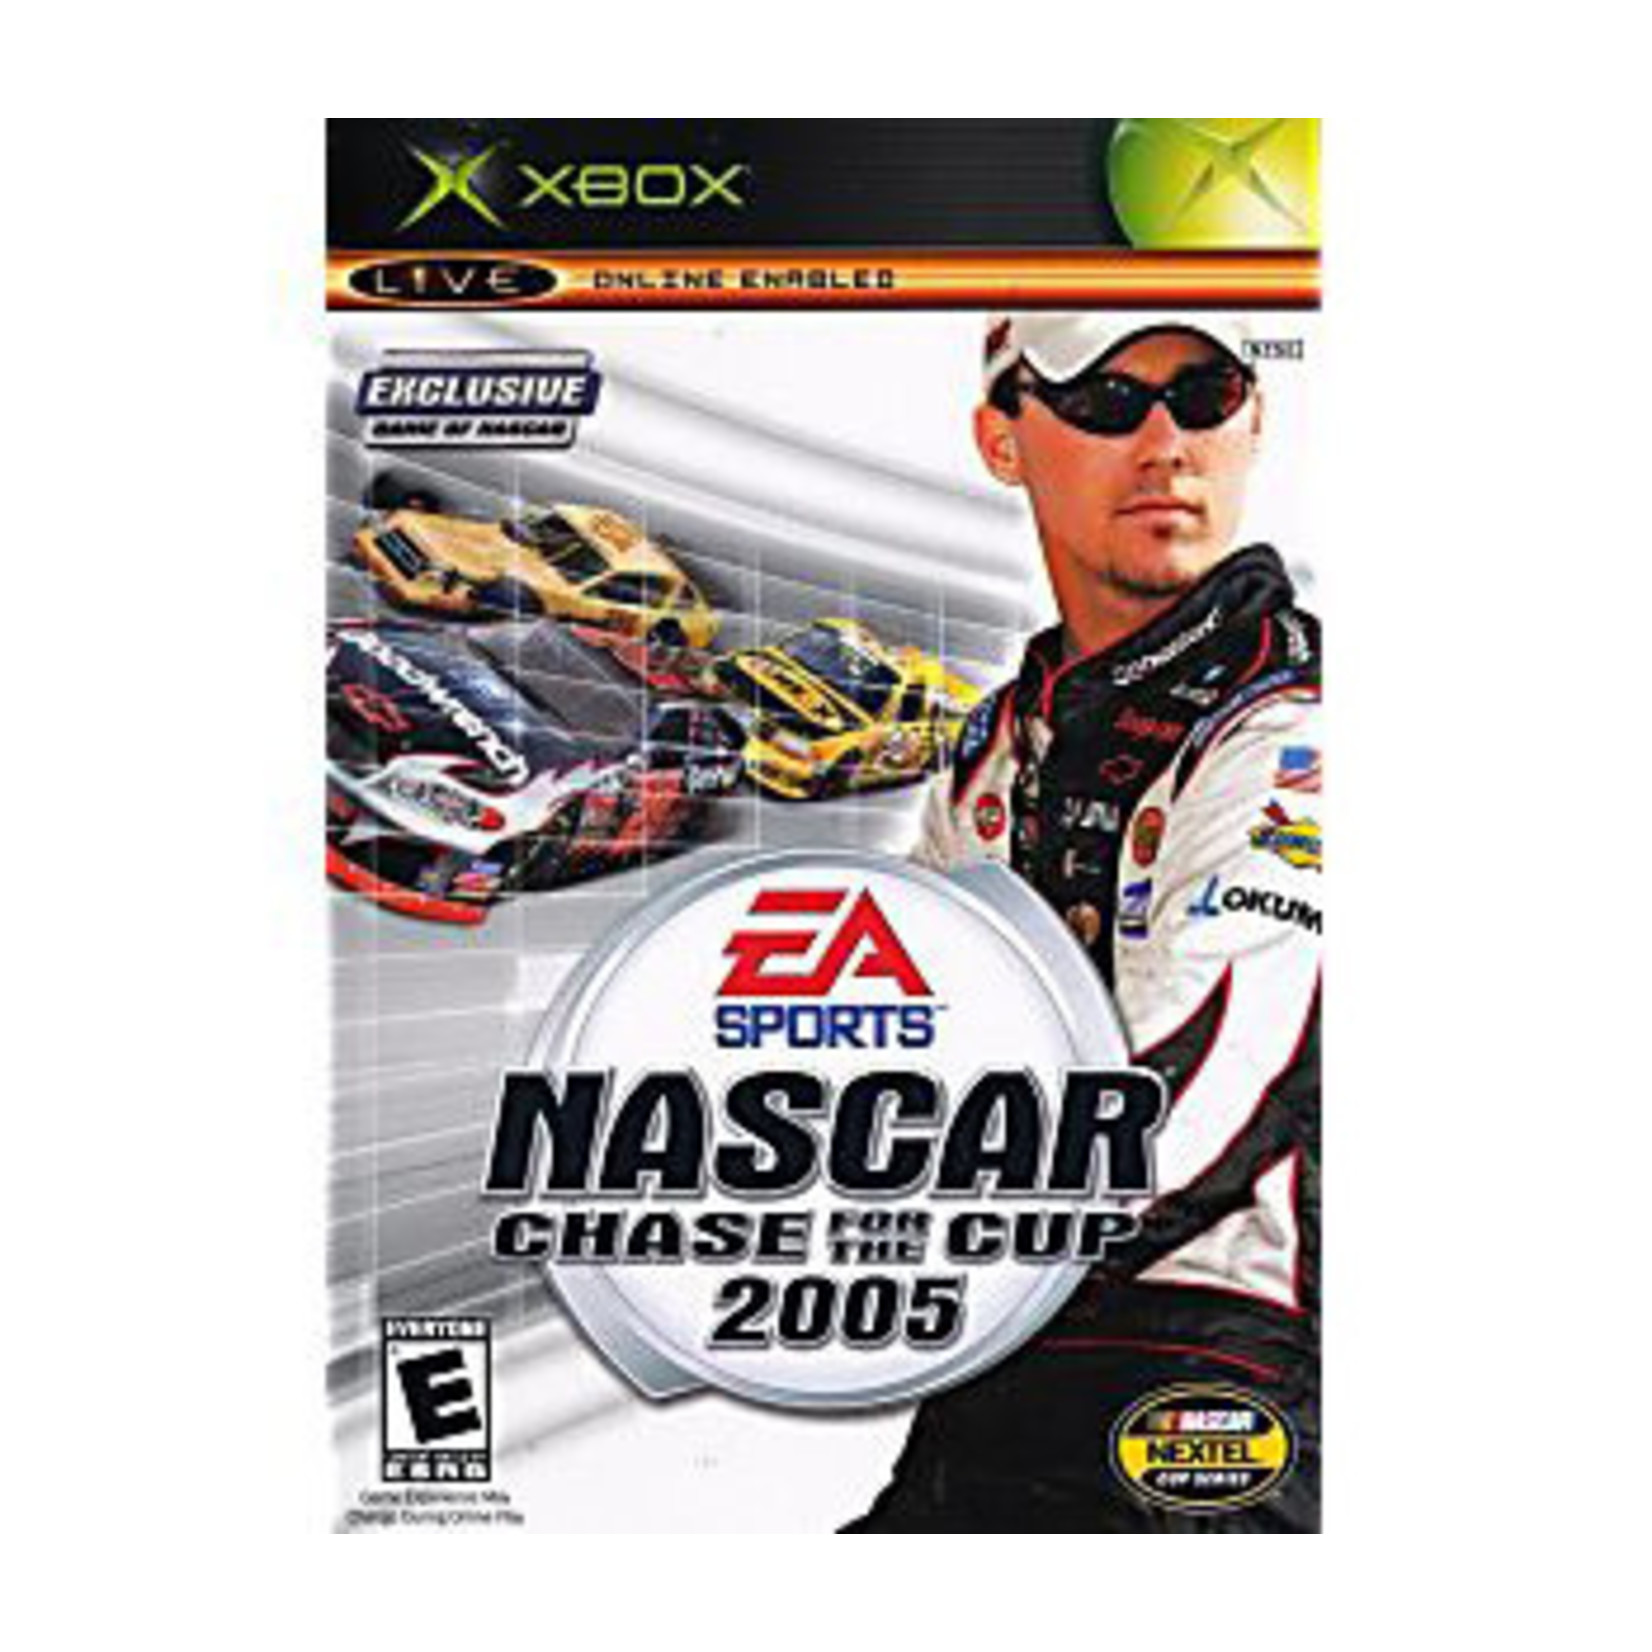 XBU-Nascar 2005 Chase for The Cup